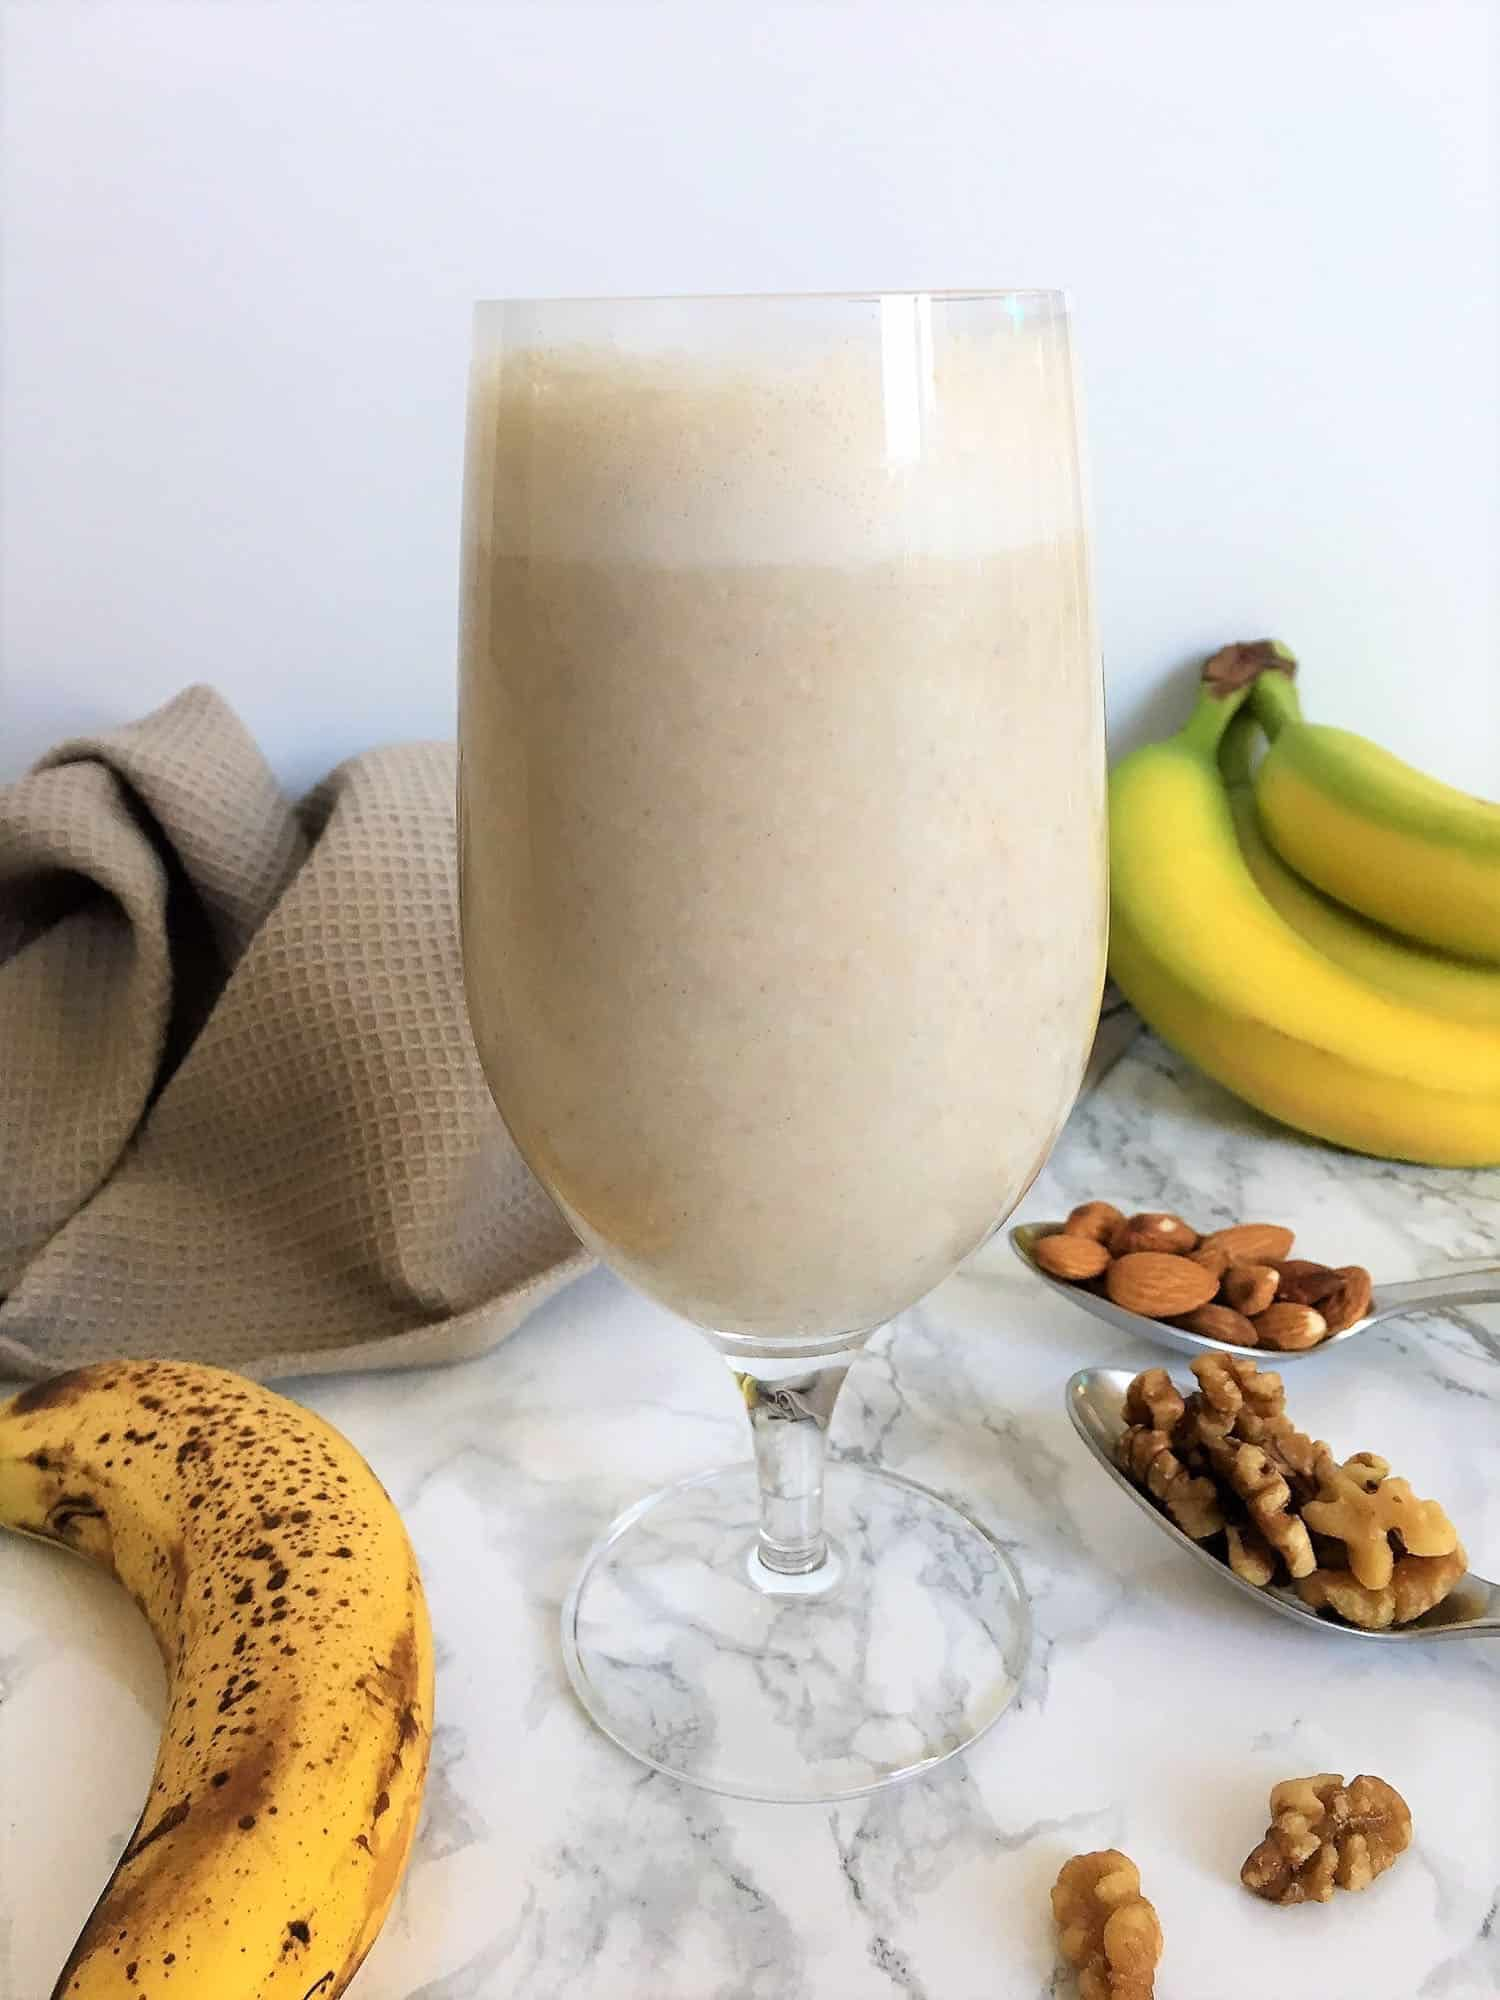 glass filled with banana smoothie with nuts and bananas on counter beside glass